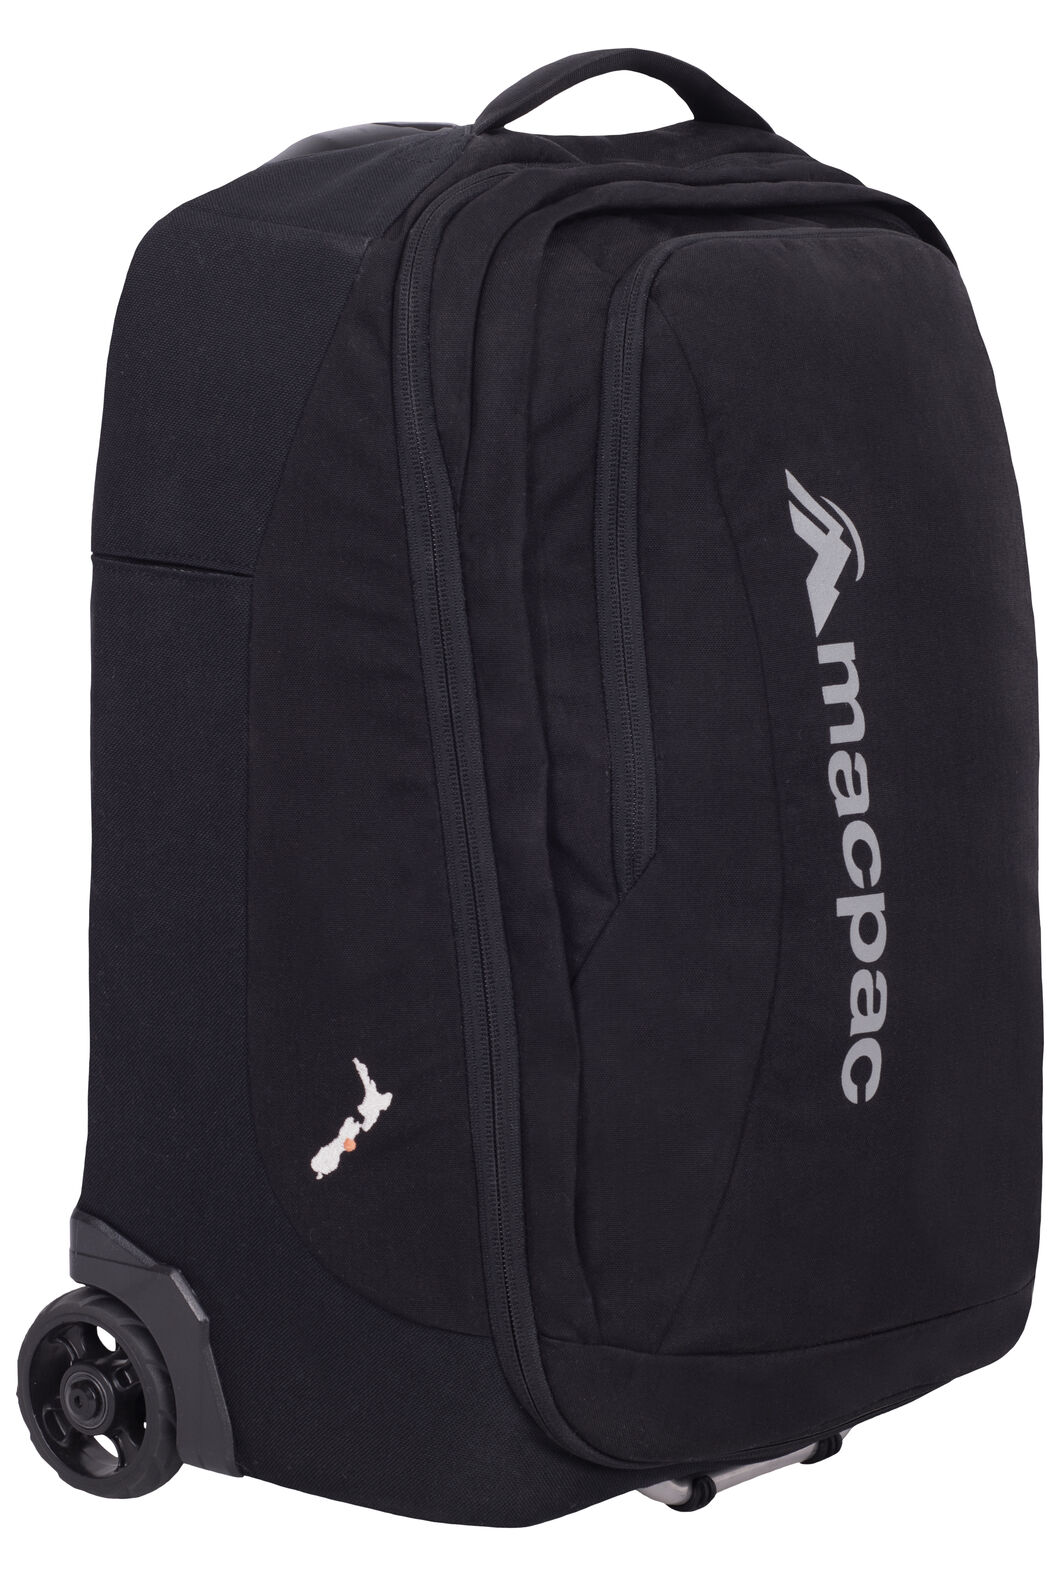 Macpac Global 35L Travel Bag, Black, hi-res